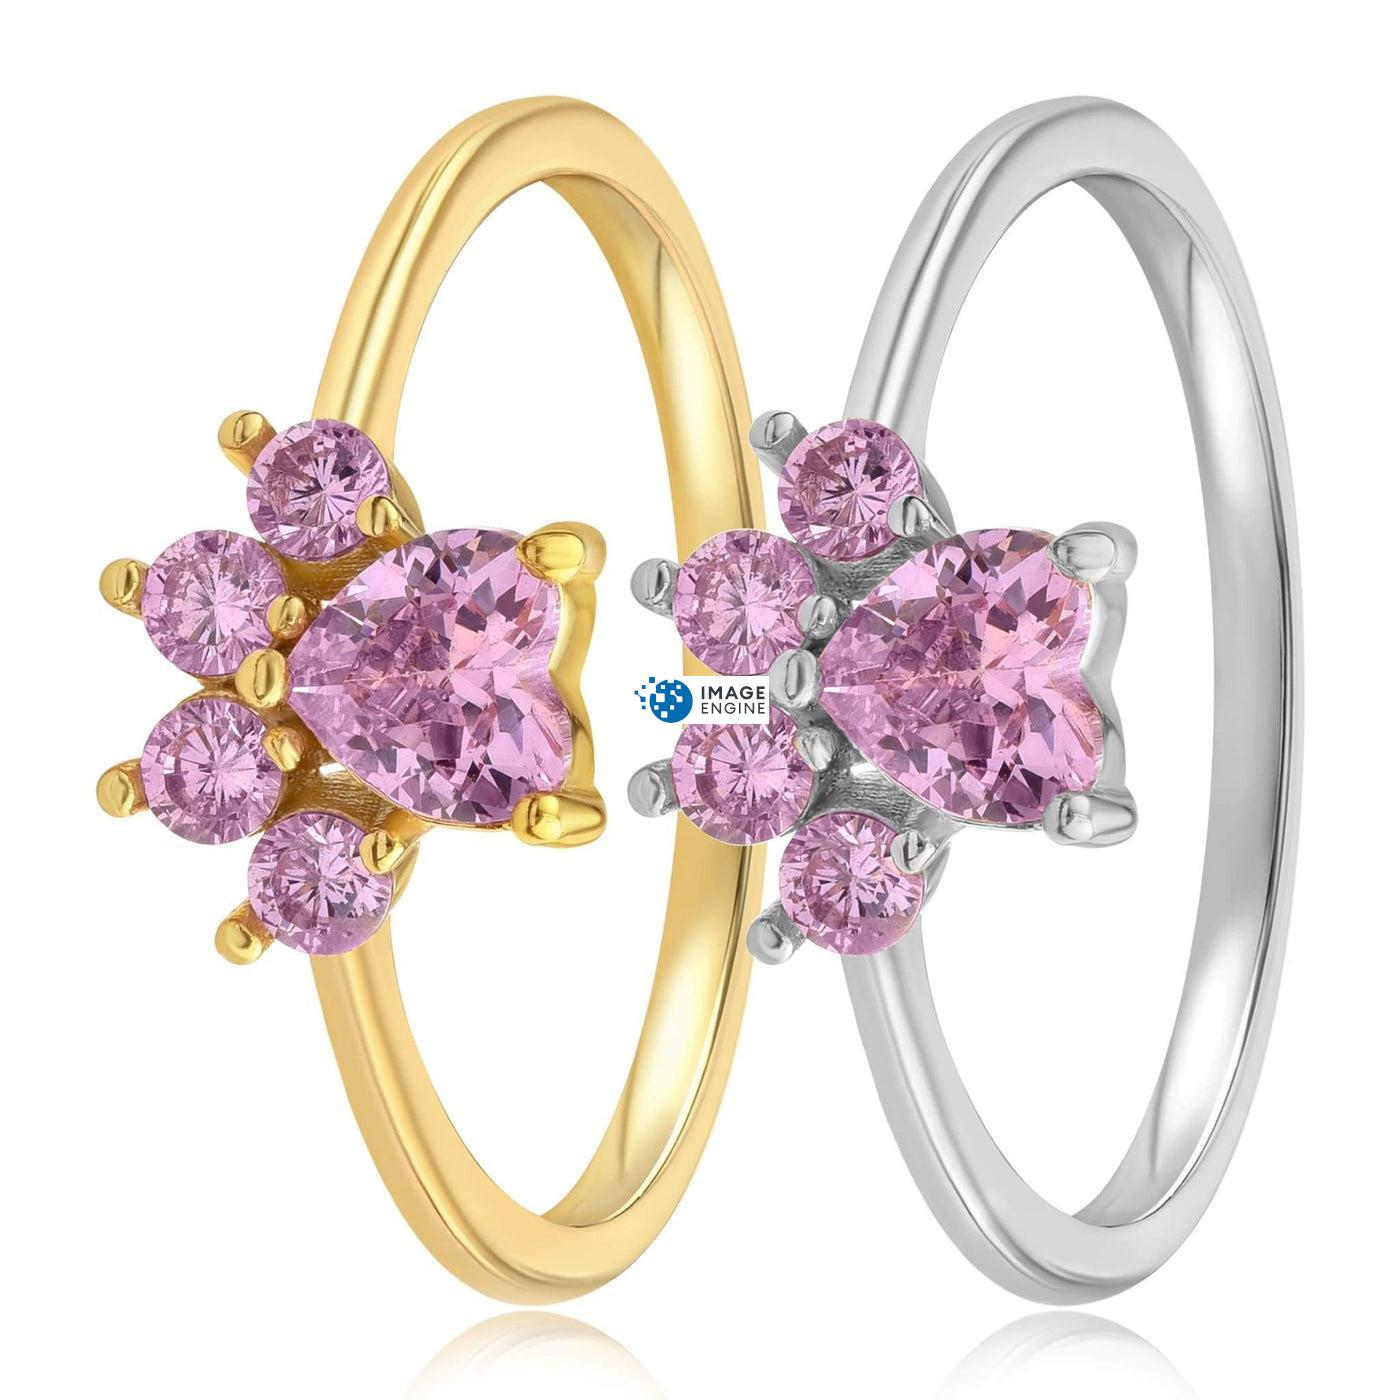 Bella Paw Rose Quartz Ring - Side By Side - 18K Yellow Gold and 925 Sterling Silver